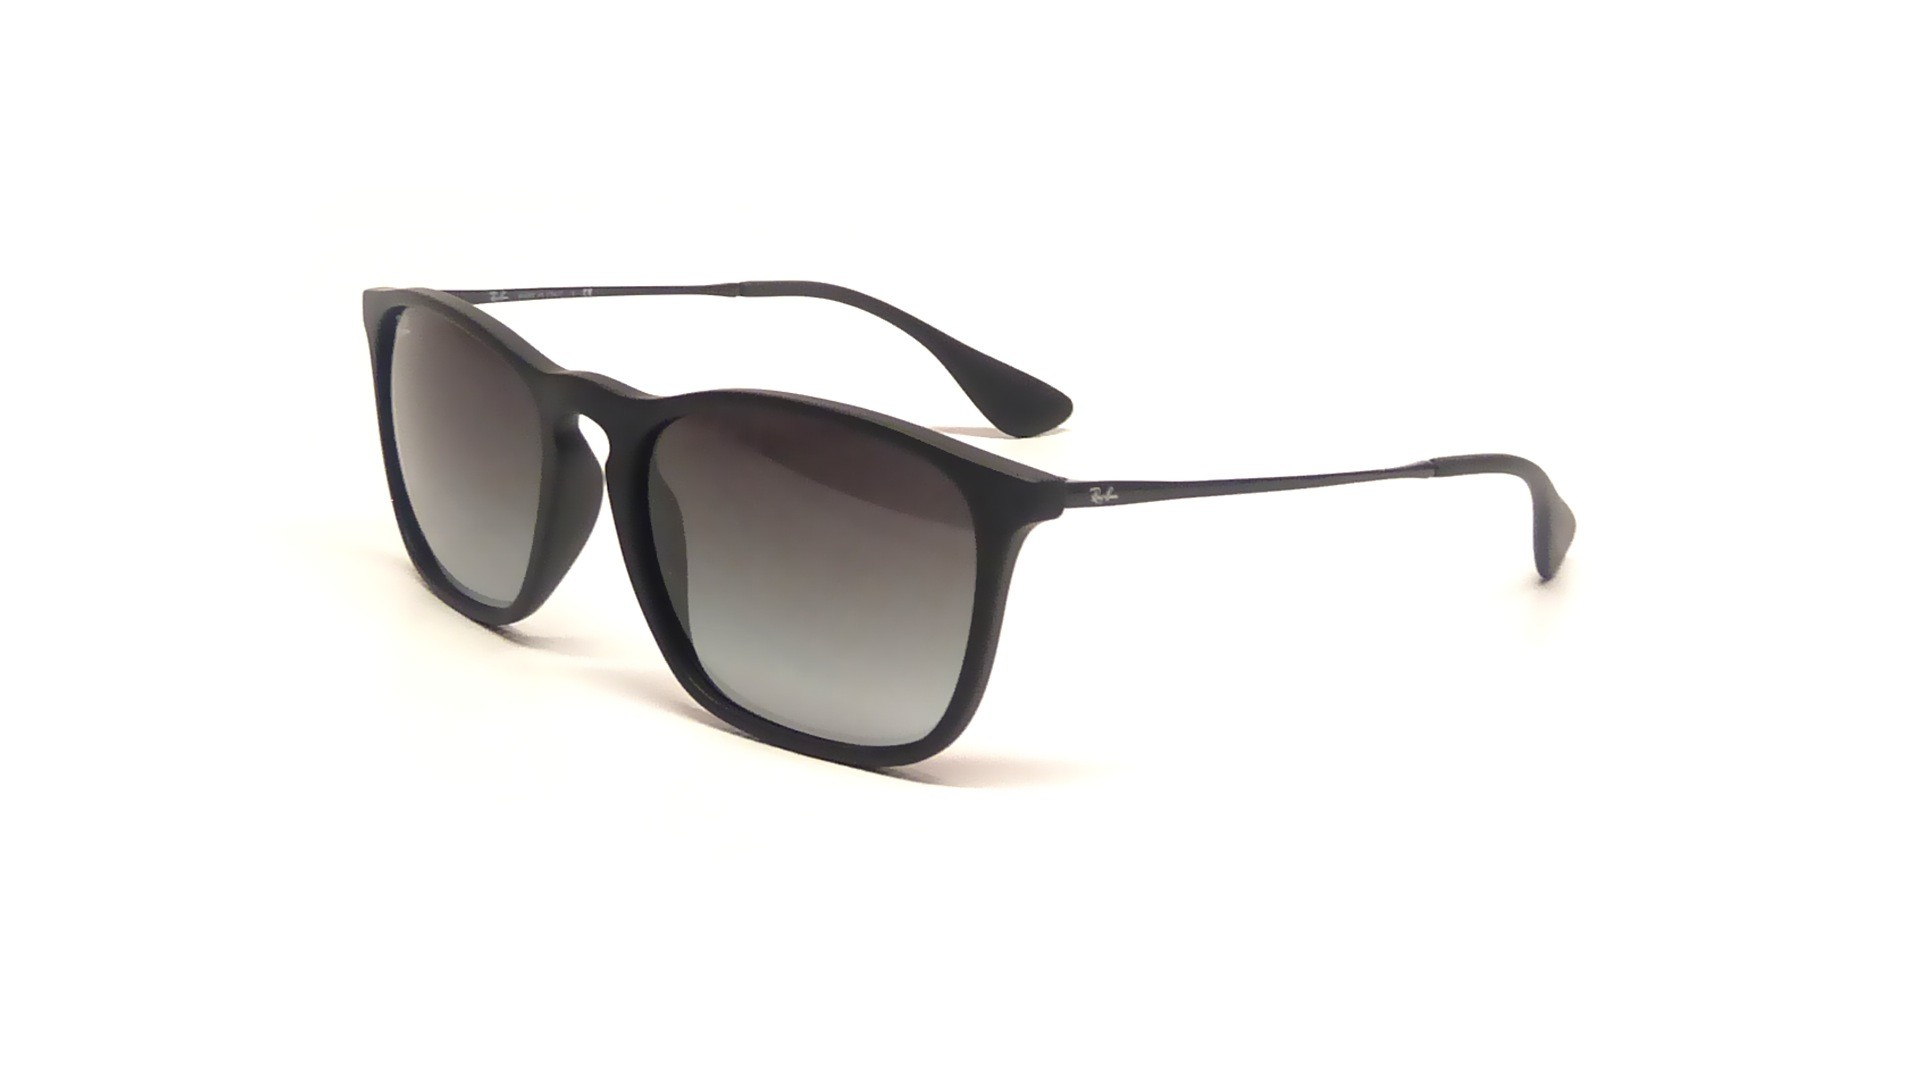 72322df32e Sunglasses Ray-Ban Chris Black RB4187 622 8G 54-18 Medium Gradient